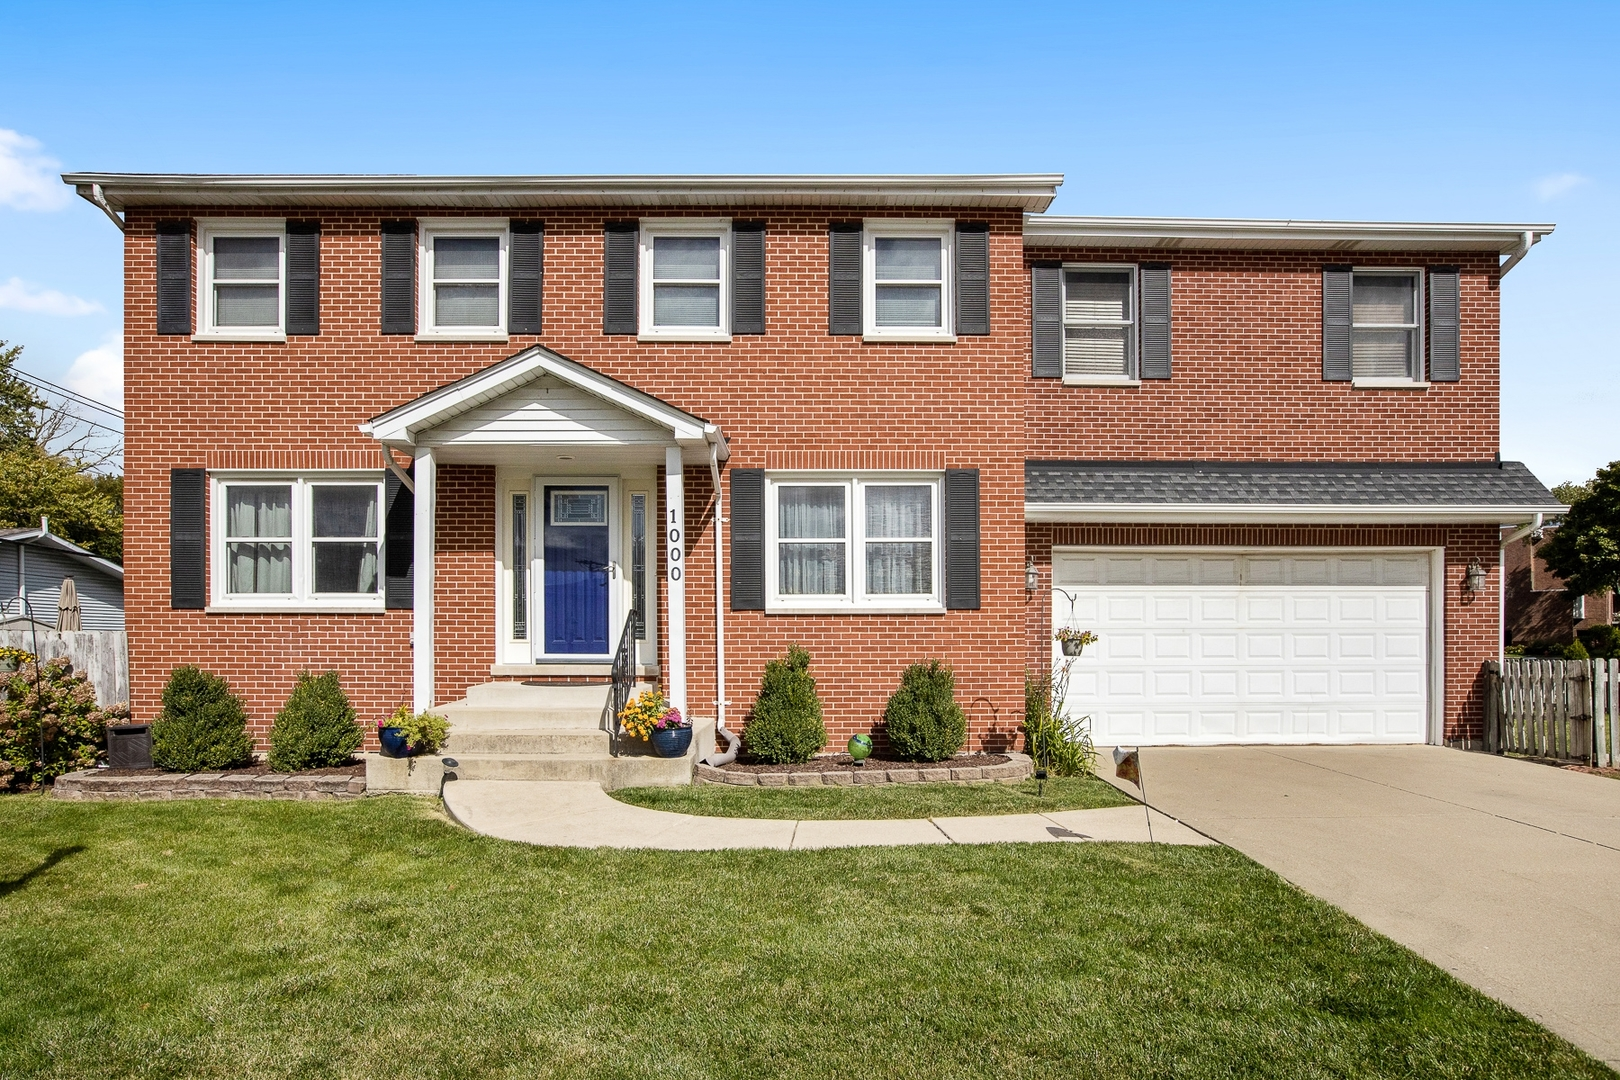 Photo for 1000 Saylor Street, Downers Grove, IL 60516 (MLS # 10936952)